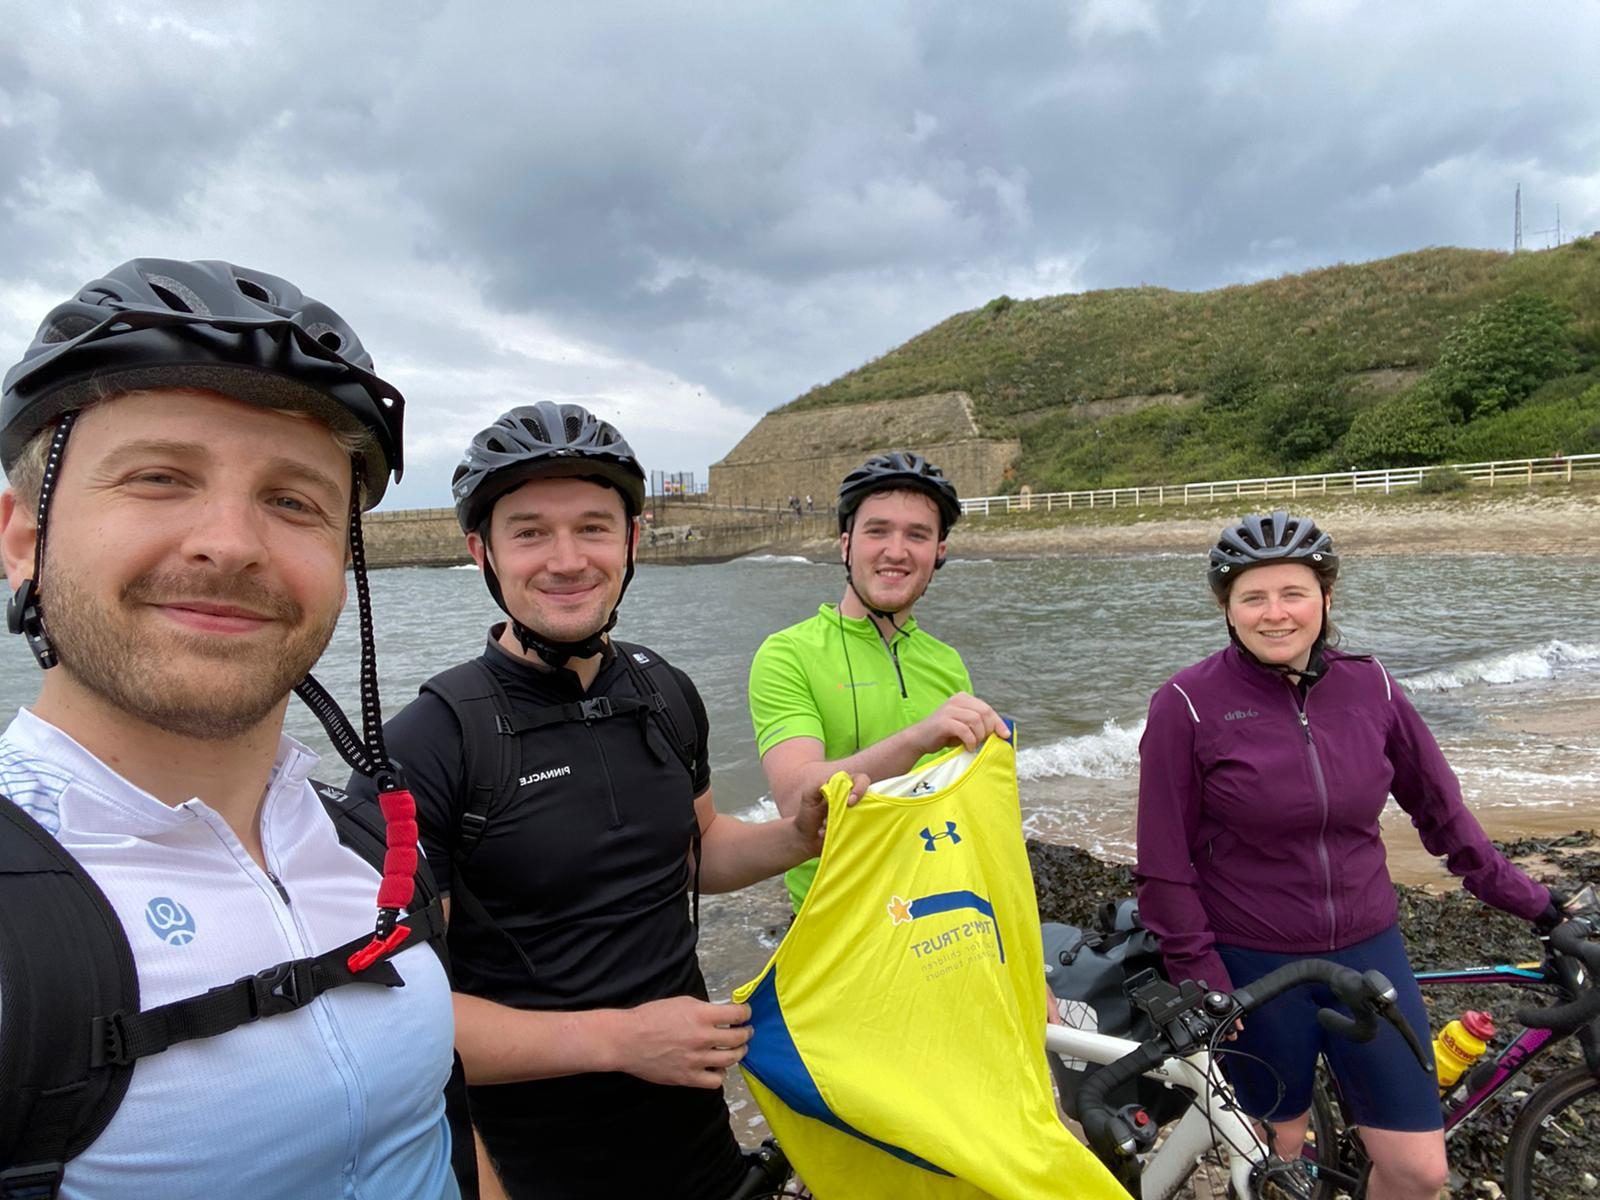 The team on their coast-to-coast challenge, standing in front of their bikes with helmets on, holding up a Tom's Trust vest. The background is the sea and hills.